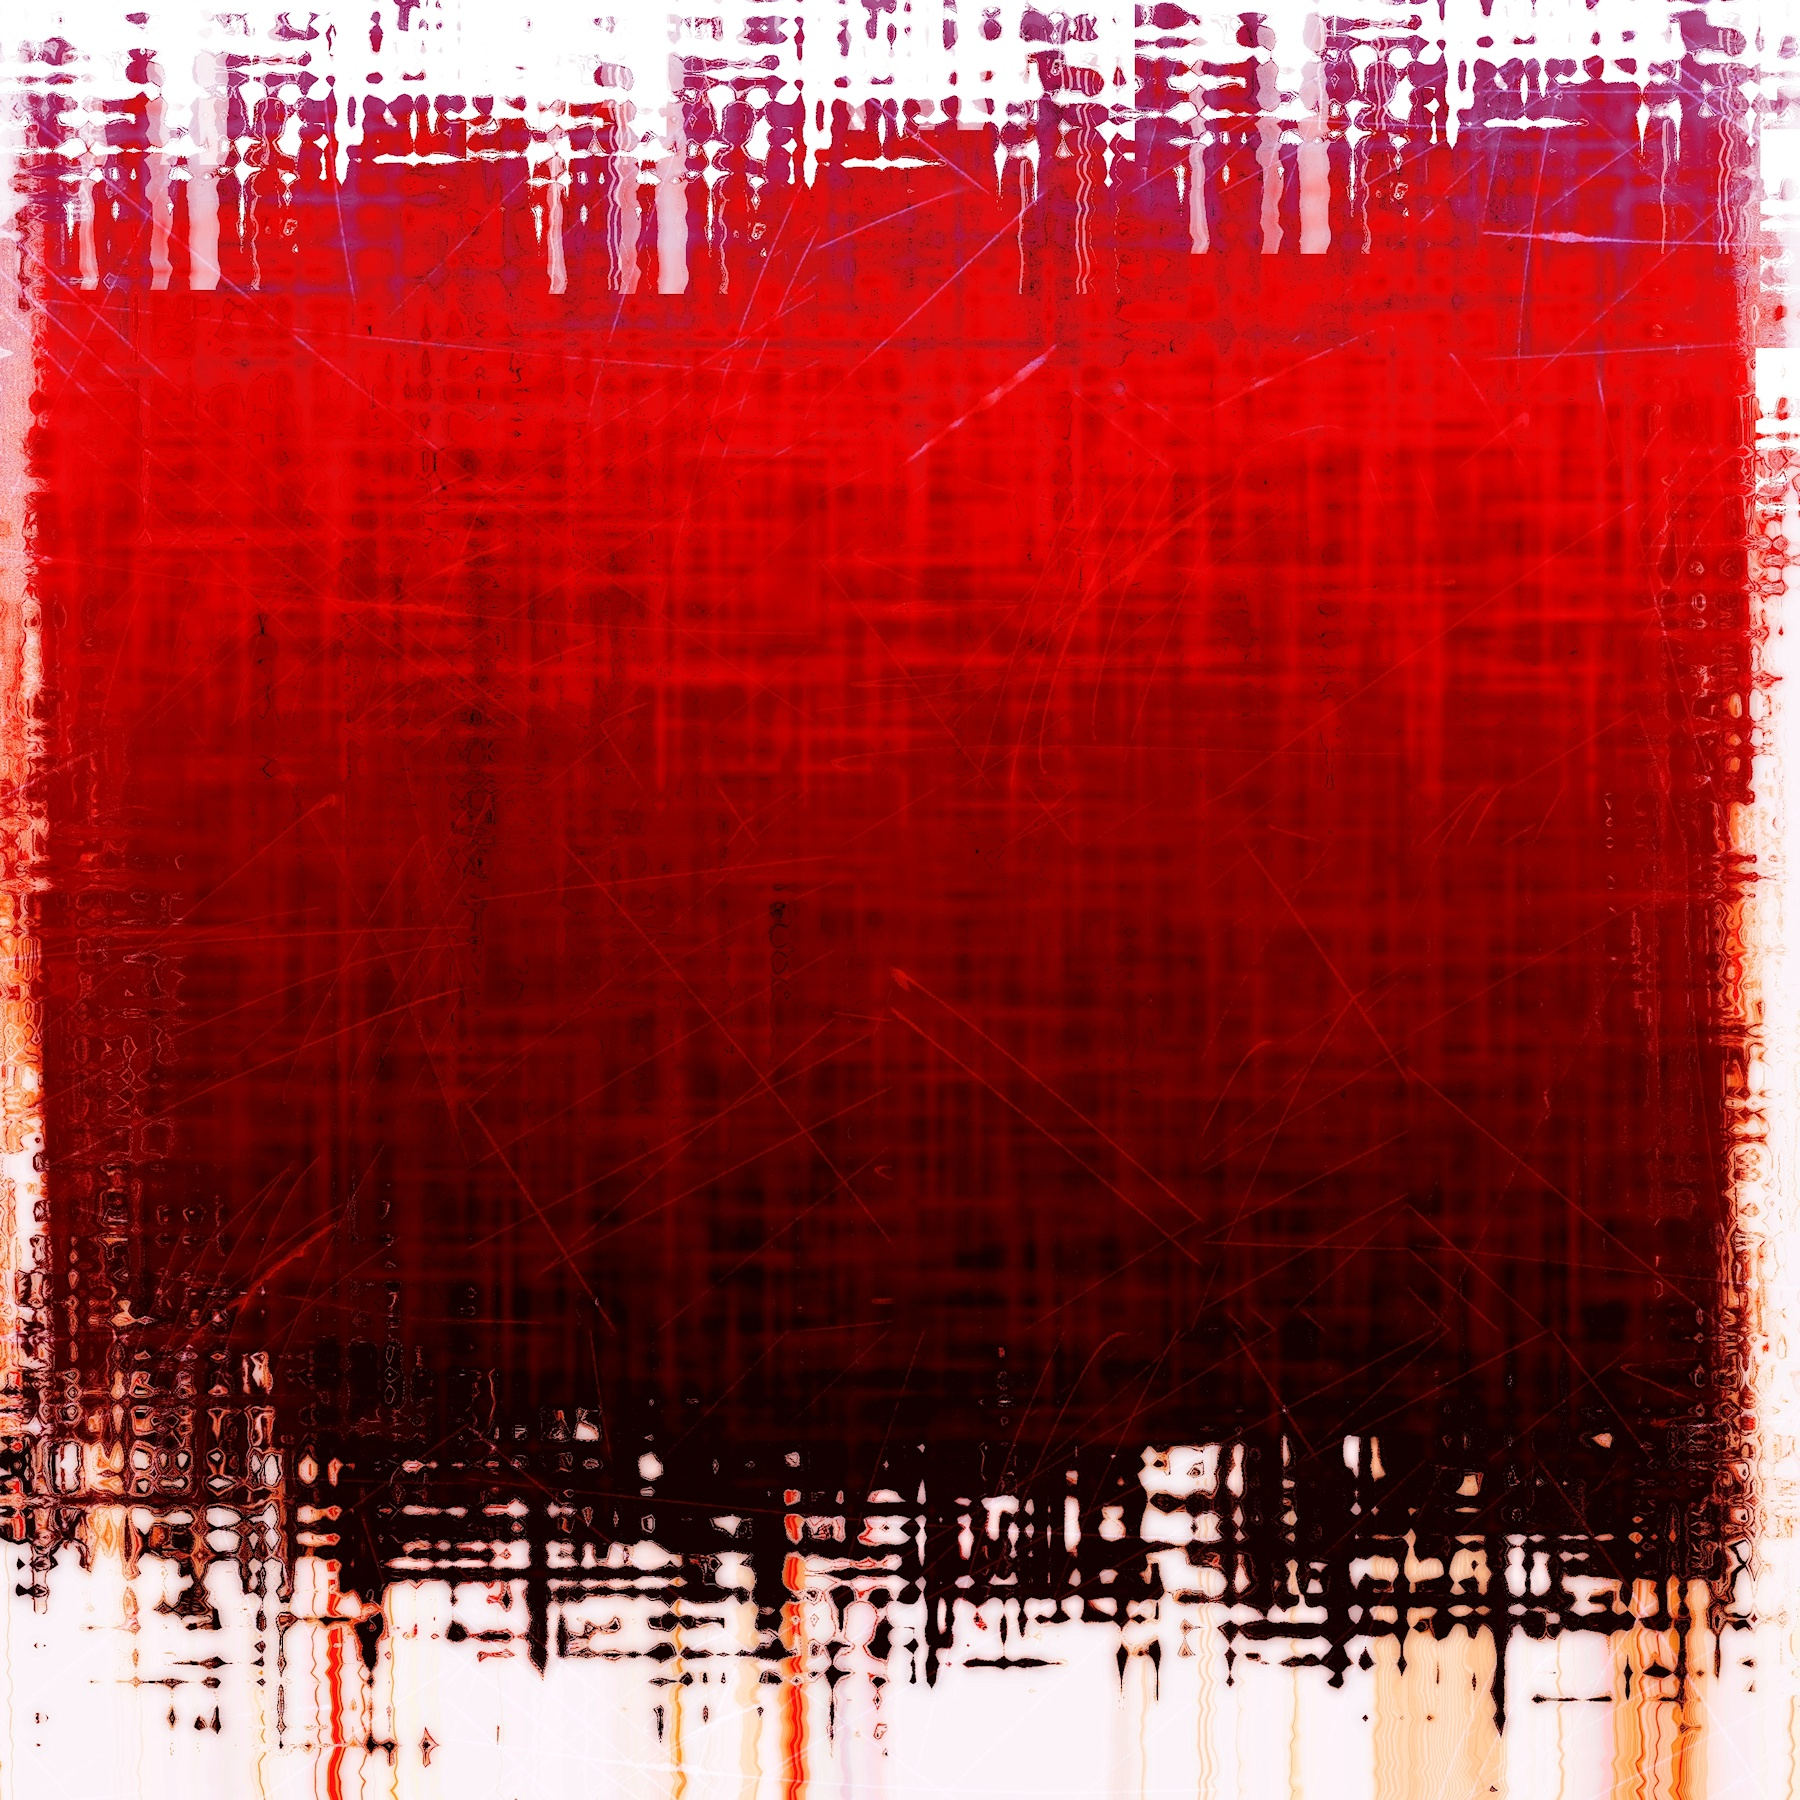 Grunge red background II by yko 54 1800x1800